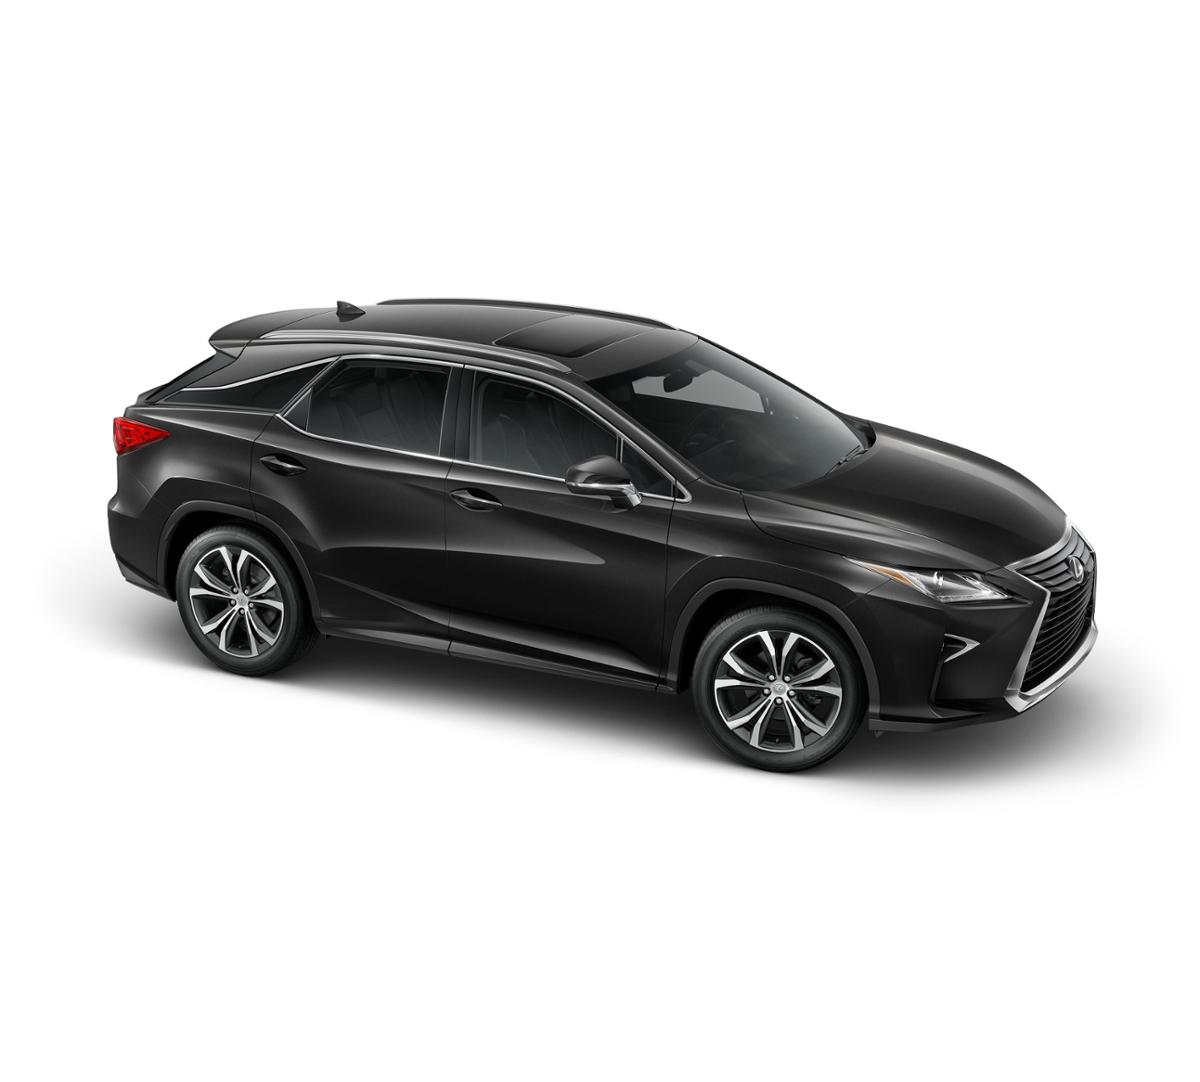 2018 lexus rx 350 details lexus of lansing. Black Bedroom Furniture Sets. Home Design Ideas